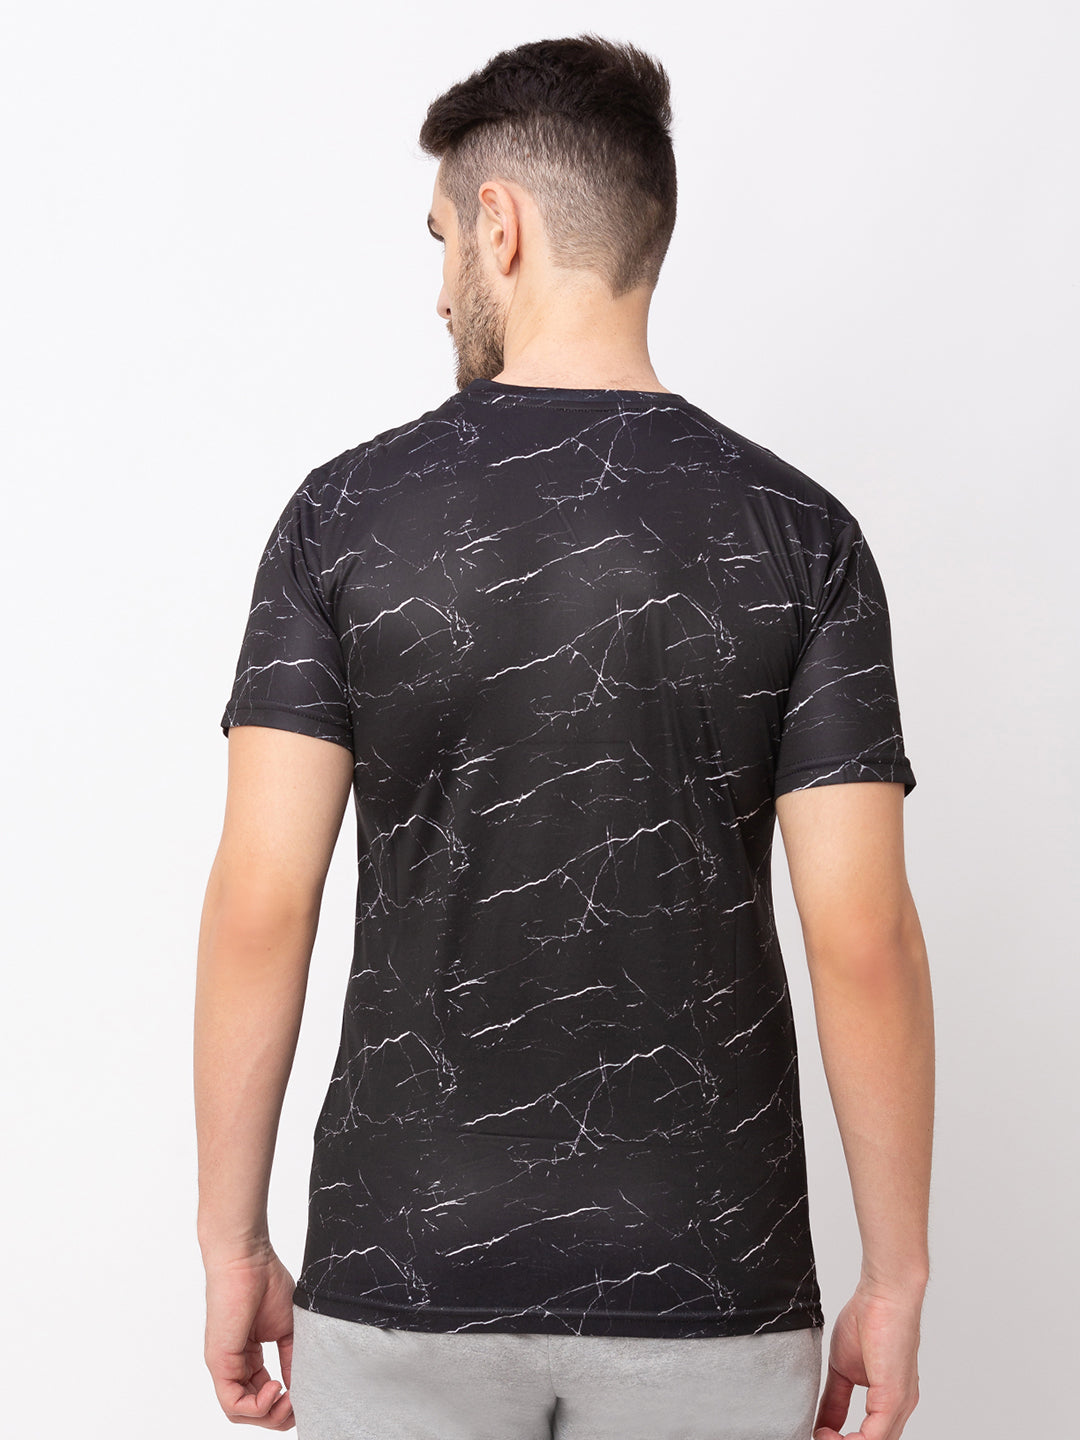 Globus Black Printed T-Shirt-3